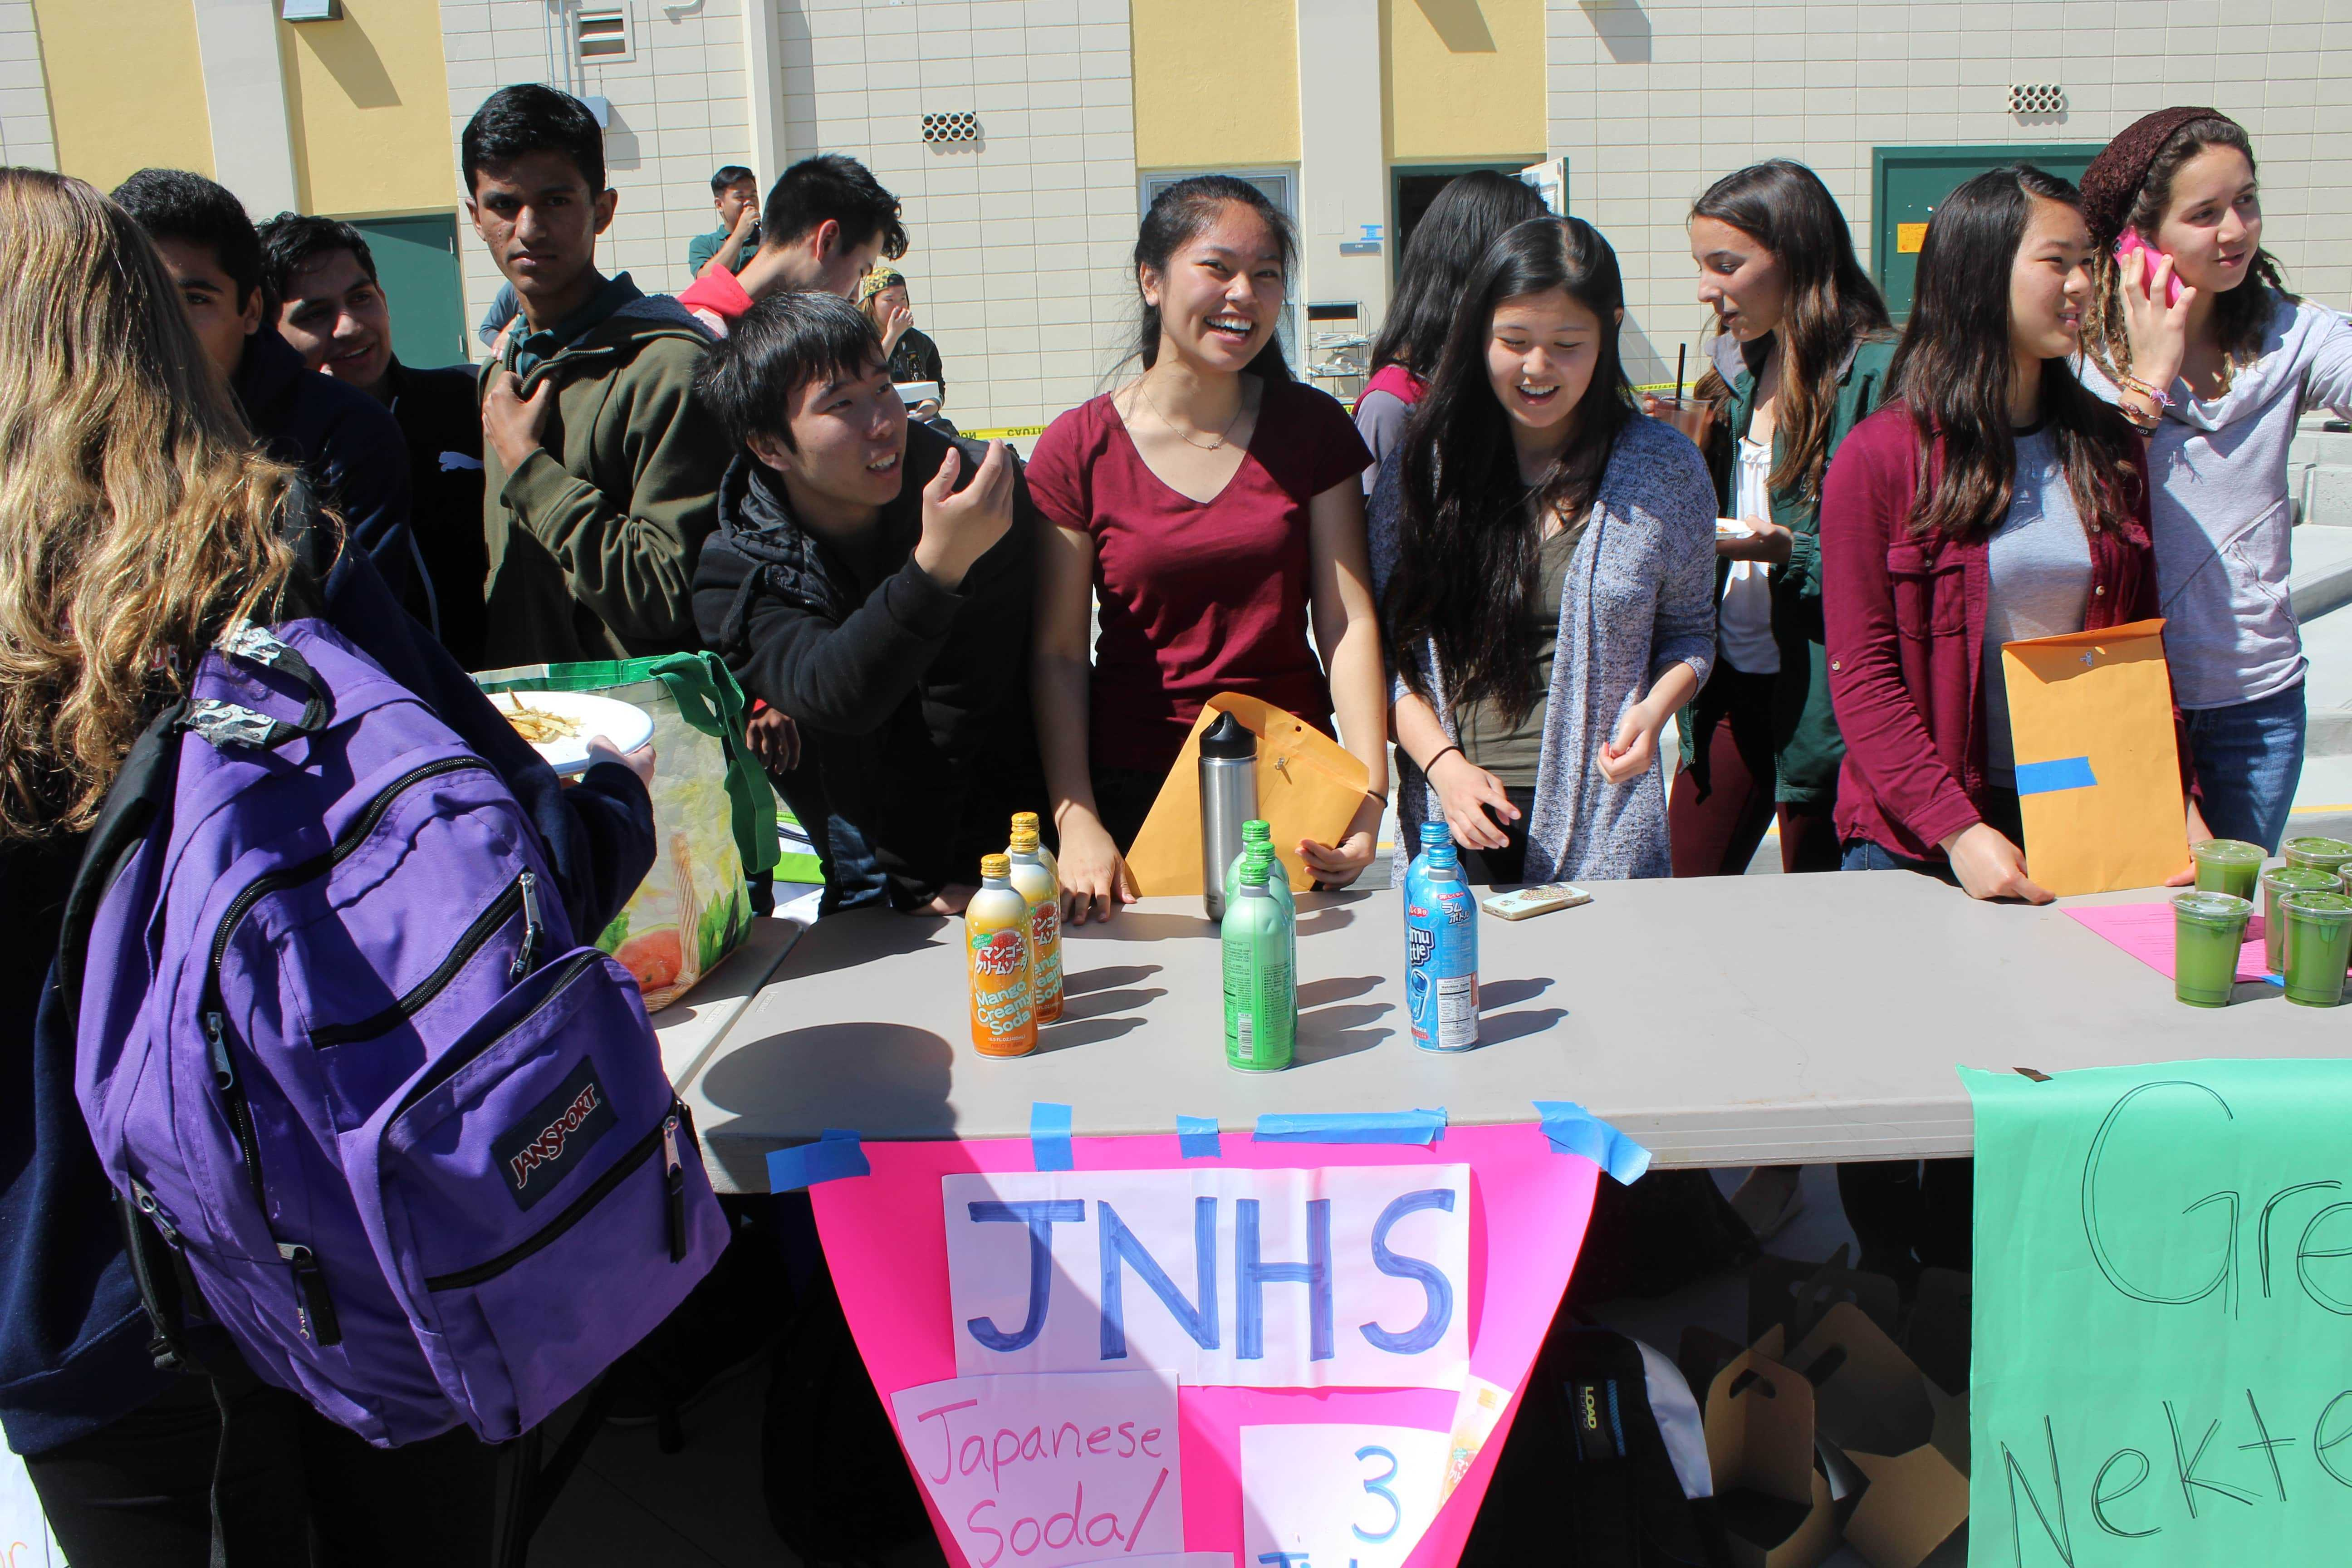 Students selling Japanese soda at last spring's Club and Grub.